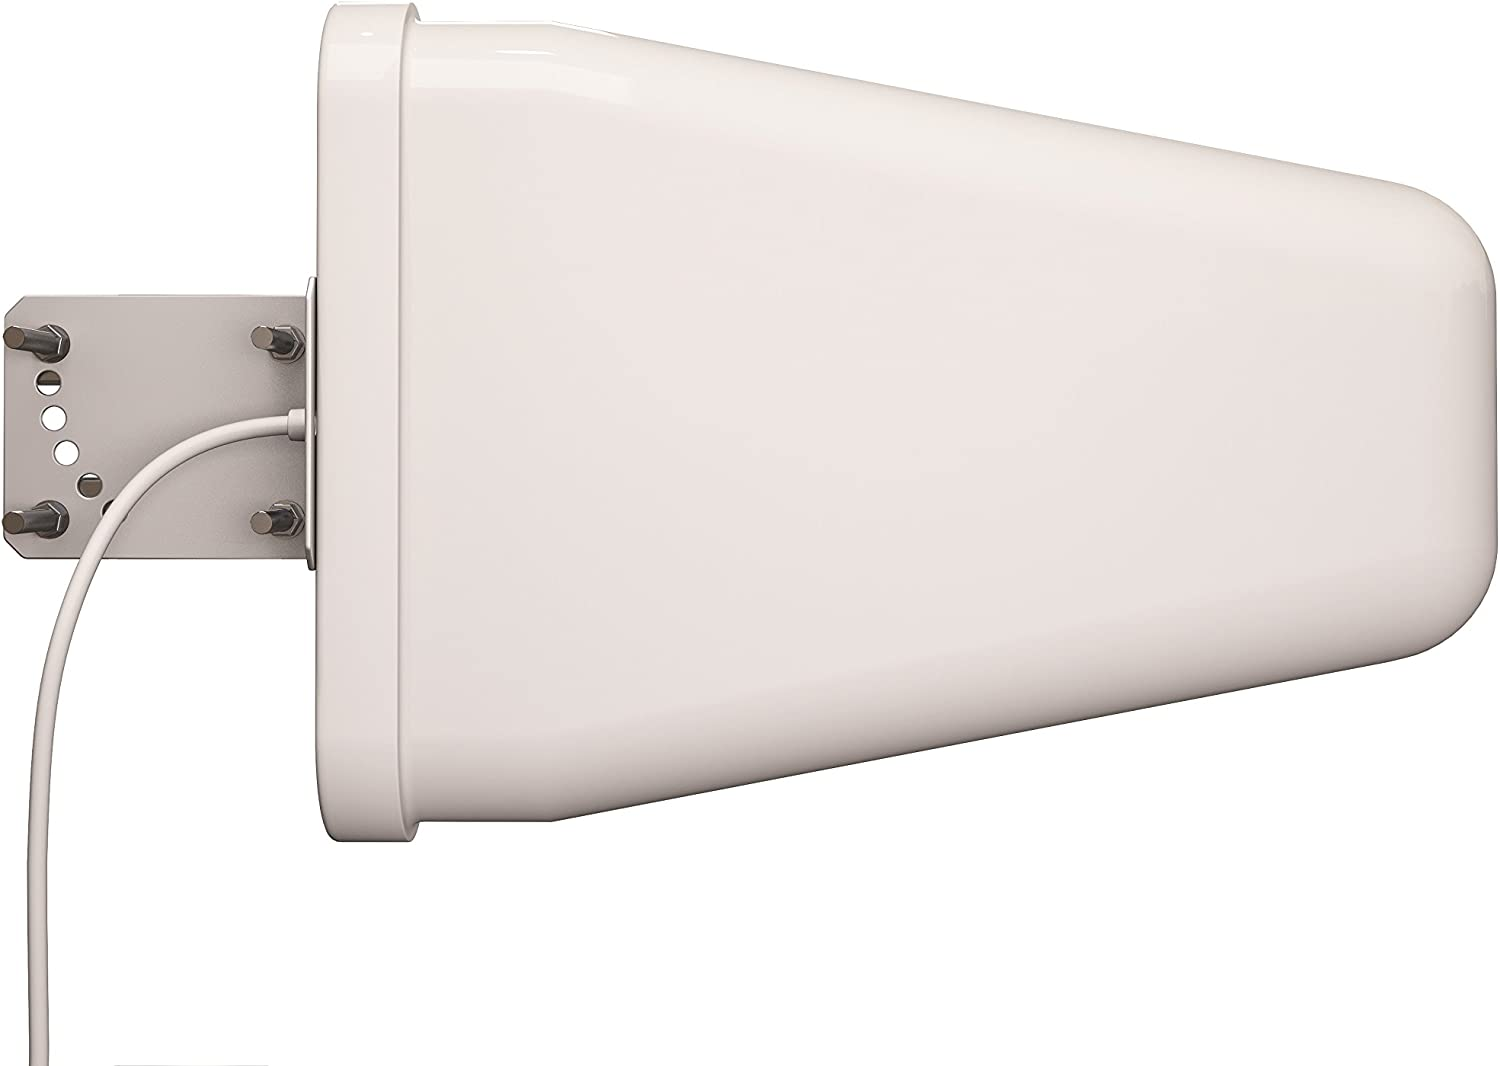 Tupavco TP514 Yagi Directional Antenna 3G/4G/LTE 9dBi 806MHz-960MHz and 1.7-2.5GHz 2FT Cable w/ 2FT RP-SMA Male Cable to TS-9 Adapter - Cell Phone Signal Booster Log Periodic Cellular